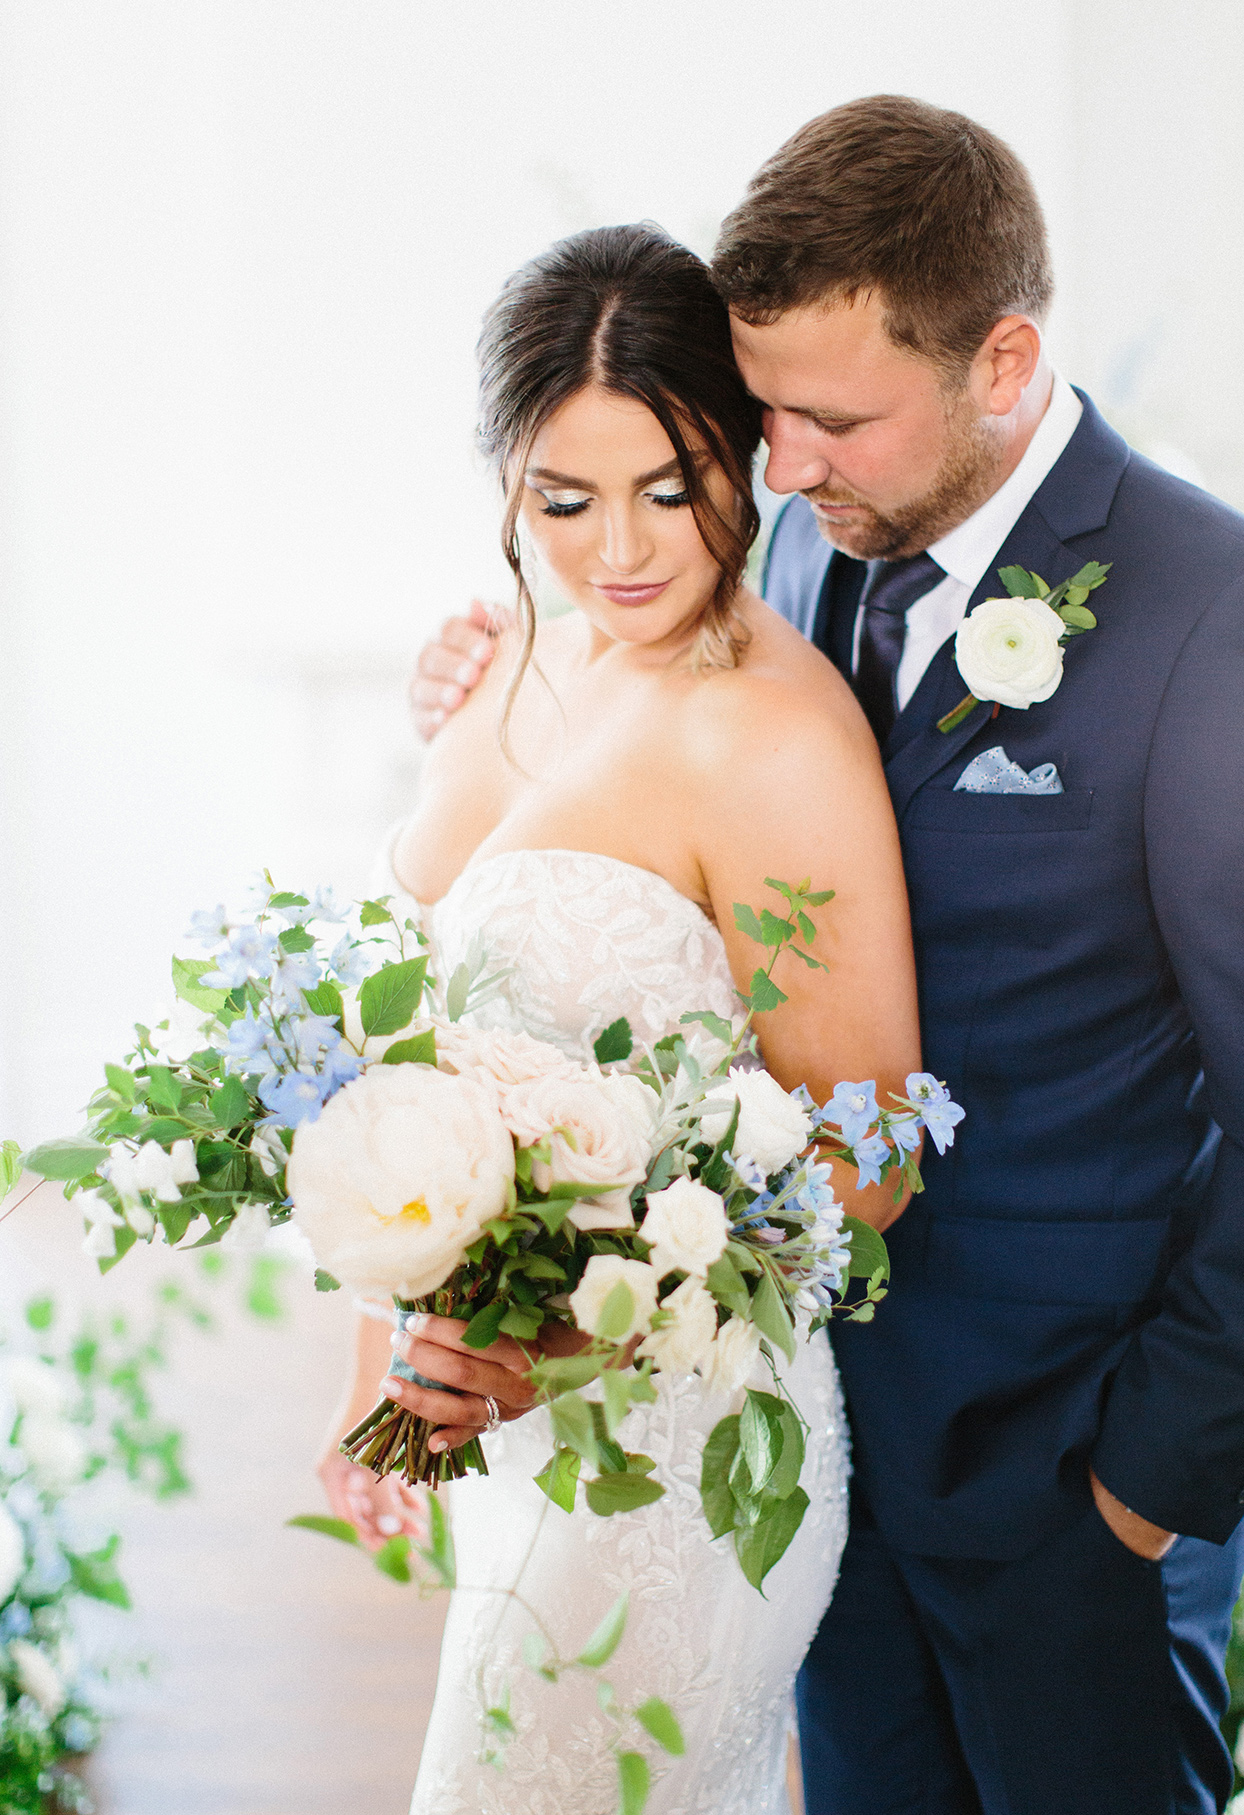 groom standing behind bride with hand on her shoulder as she leans back into him